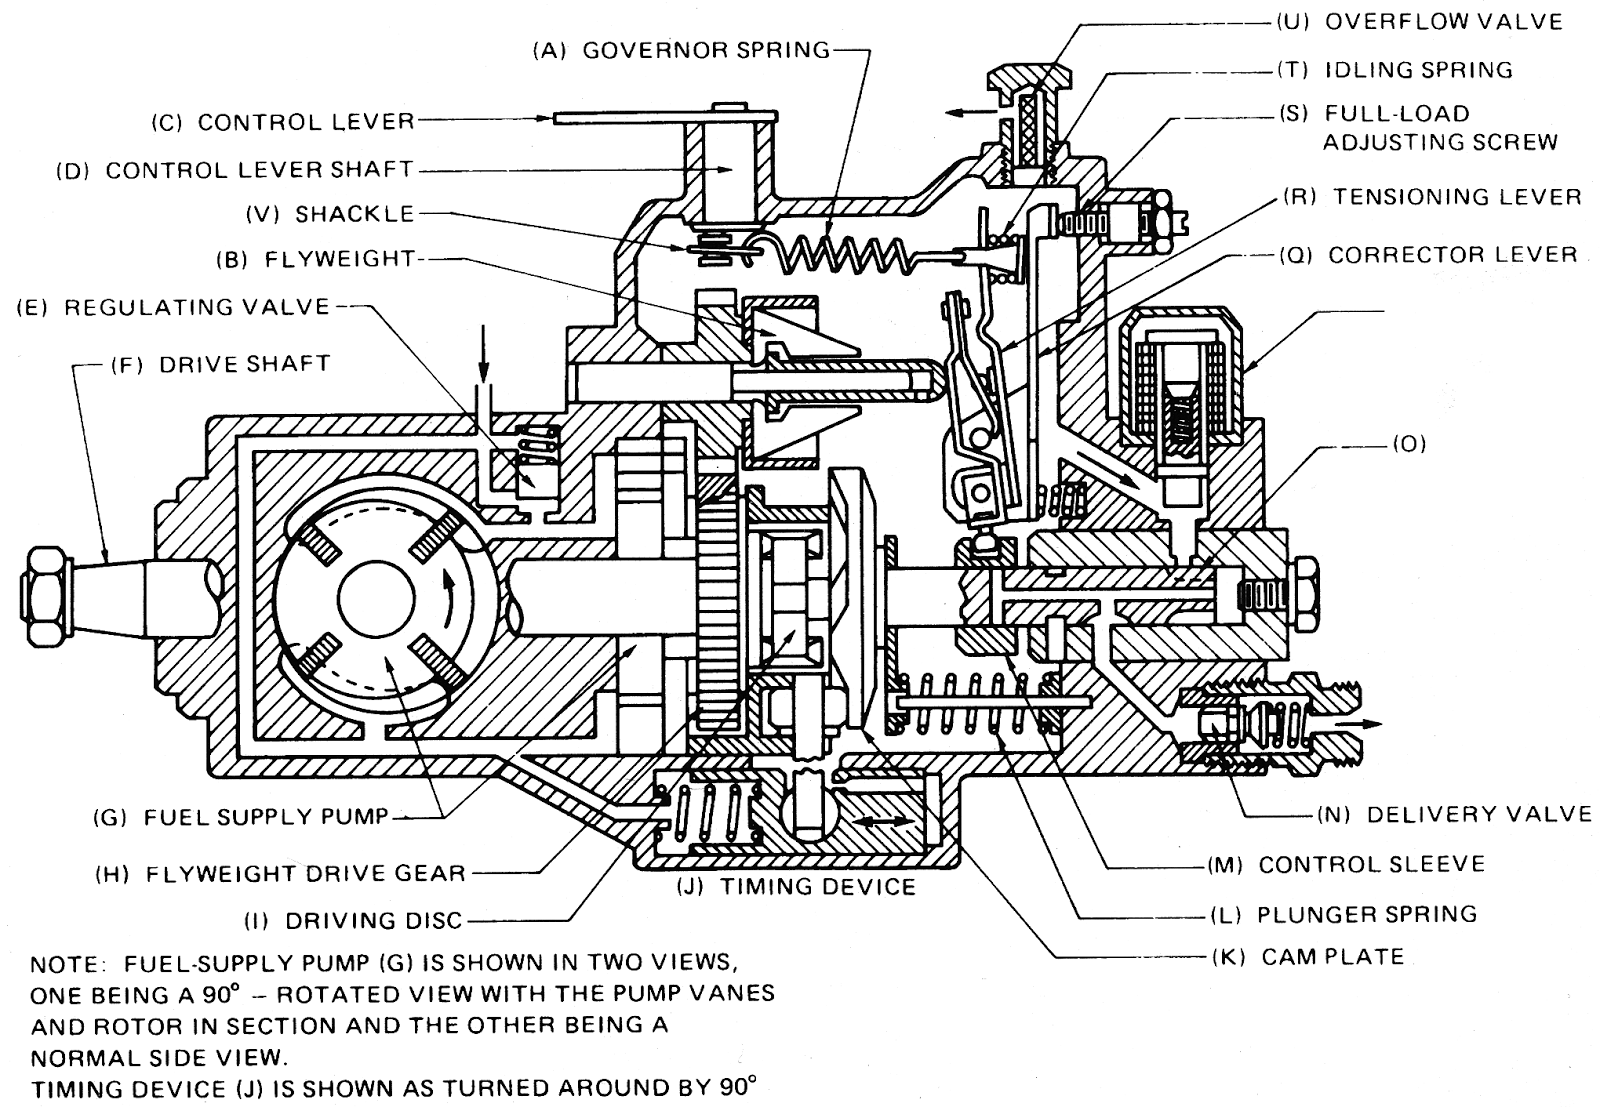 delphi injection pump parts within diagram wiring and lucas fuel injector pump parts cav fuel injection pump diagram [ 1600 x 1107 Pixel ]